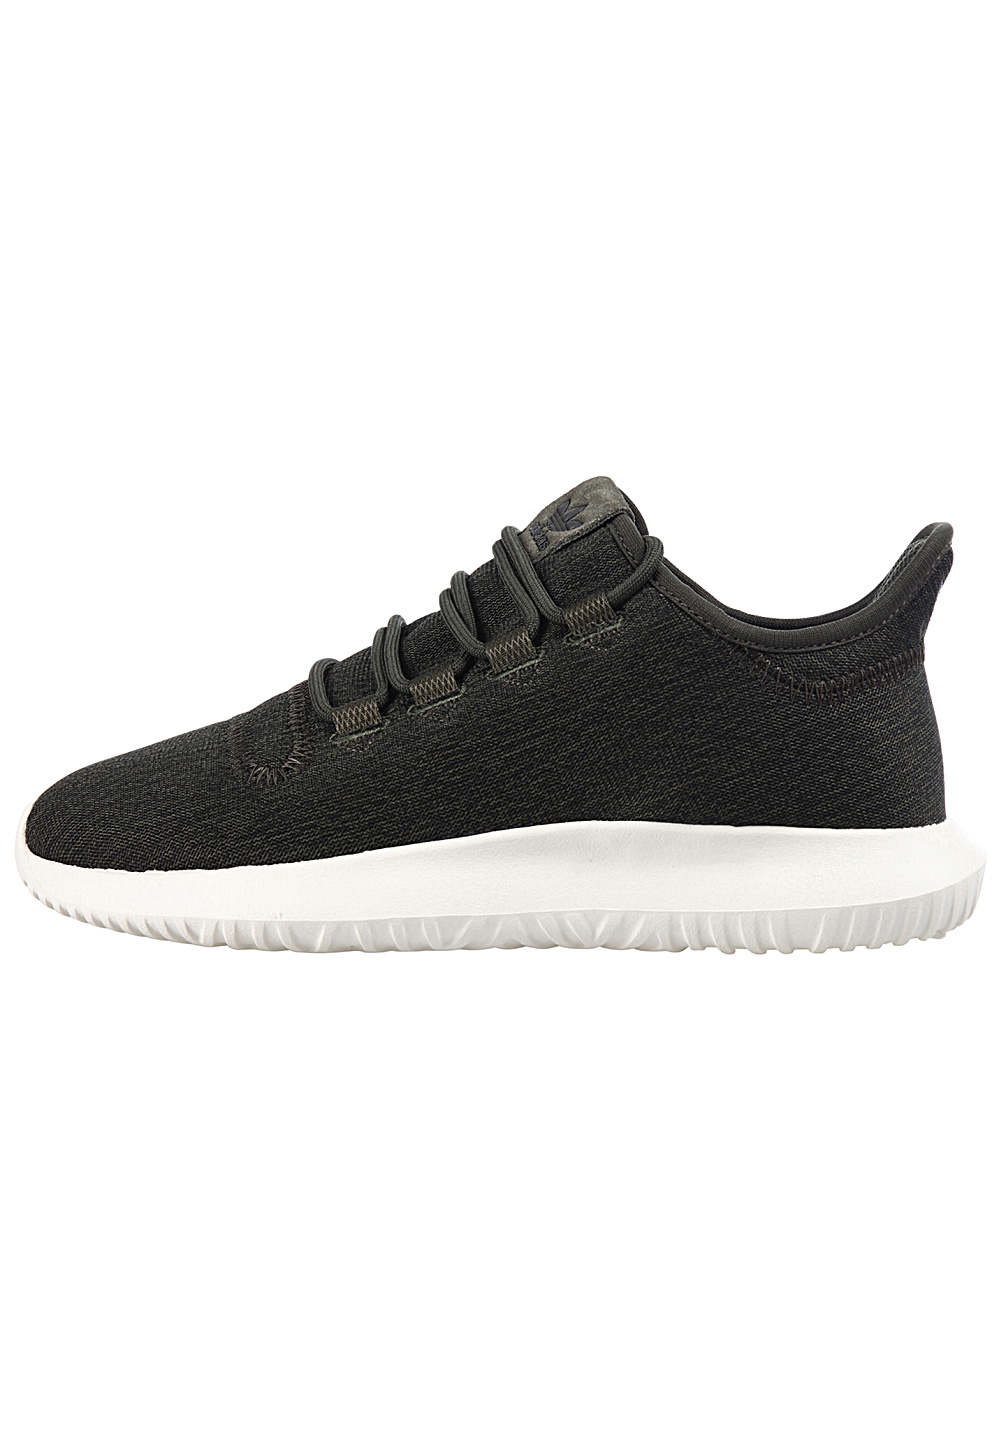 competitive price f624e 0d3ab Next. -40%. ADIDAS ORIGINALS. Tubular Shadow - Sneakers for Women